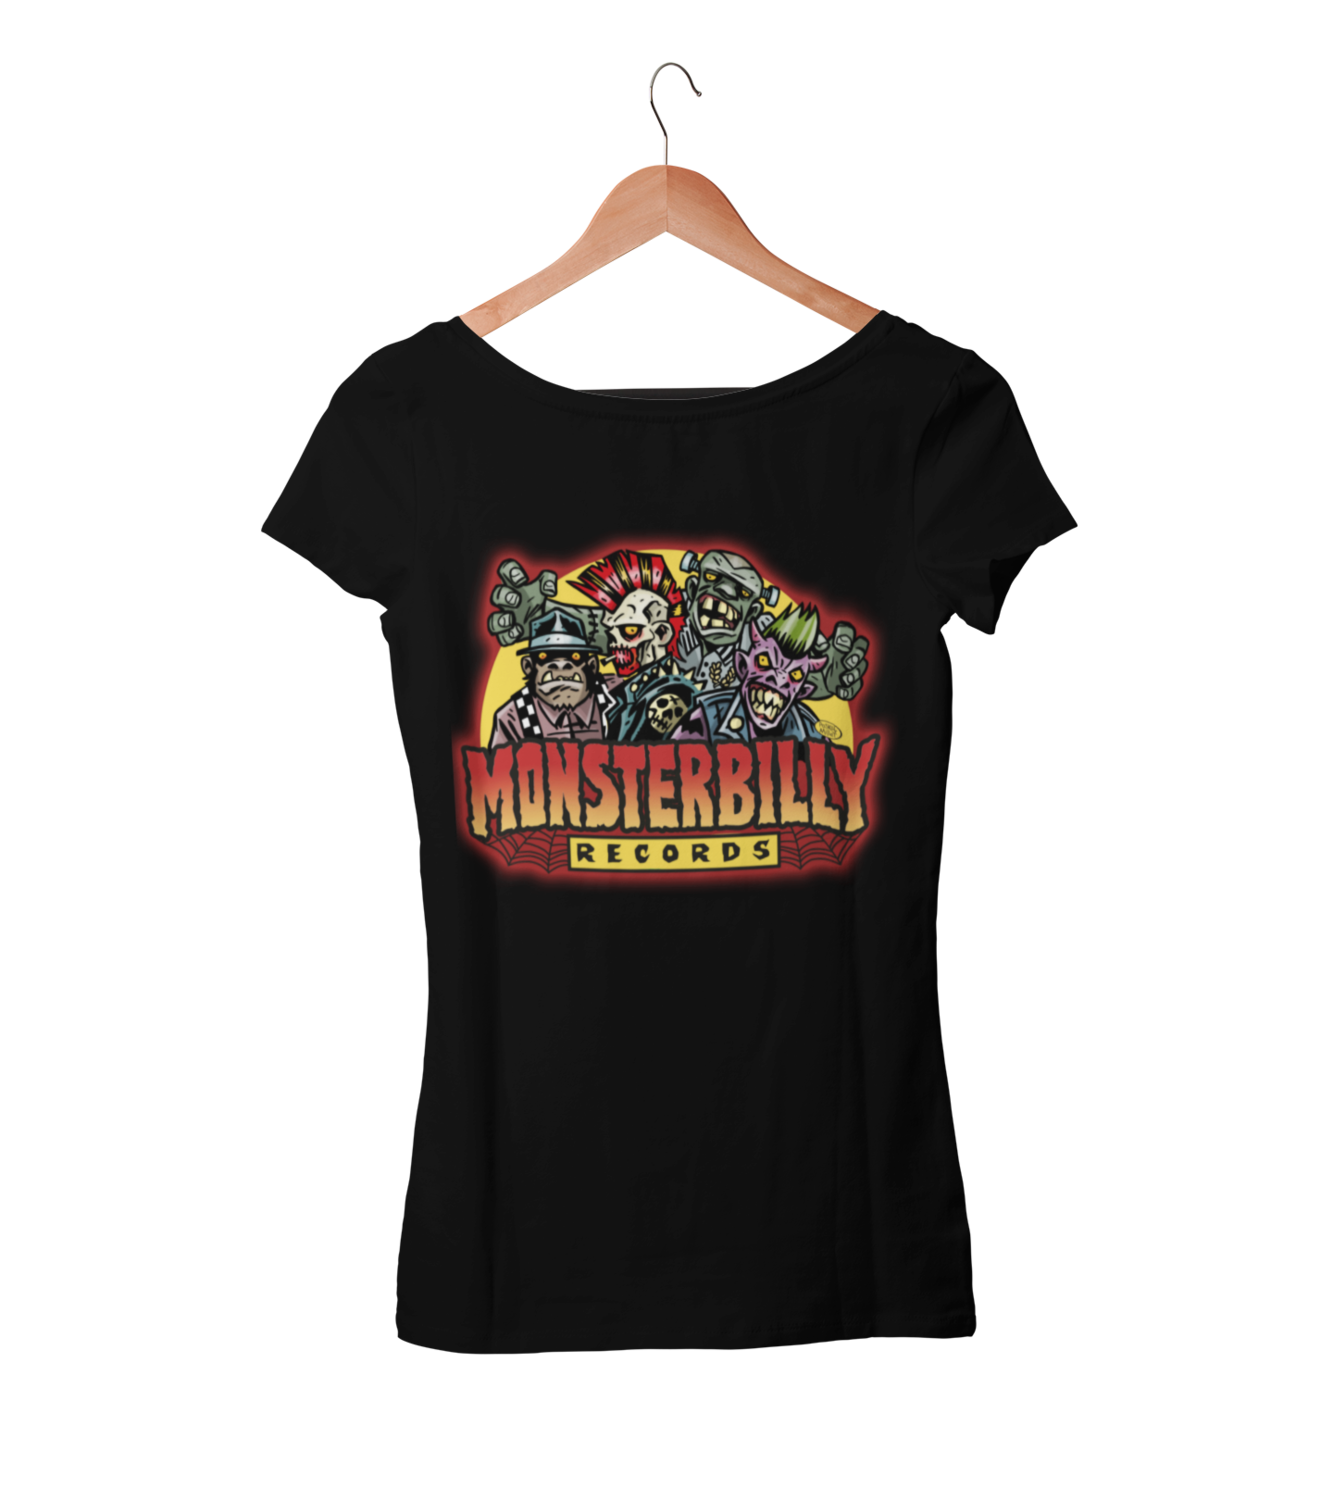 MONSTERBILLY RECORDS T-SHIRT WOMAN BY PASKAL MILLET